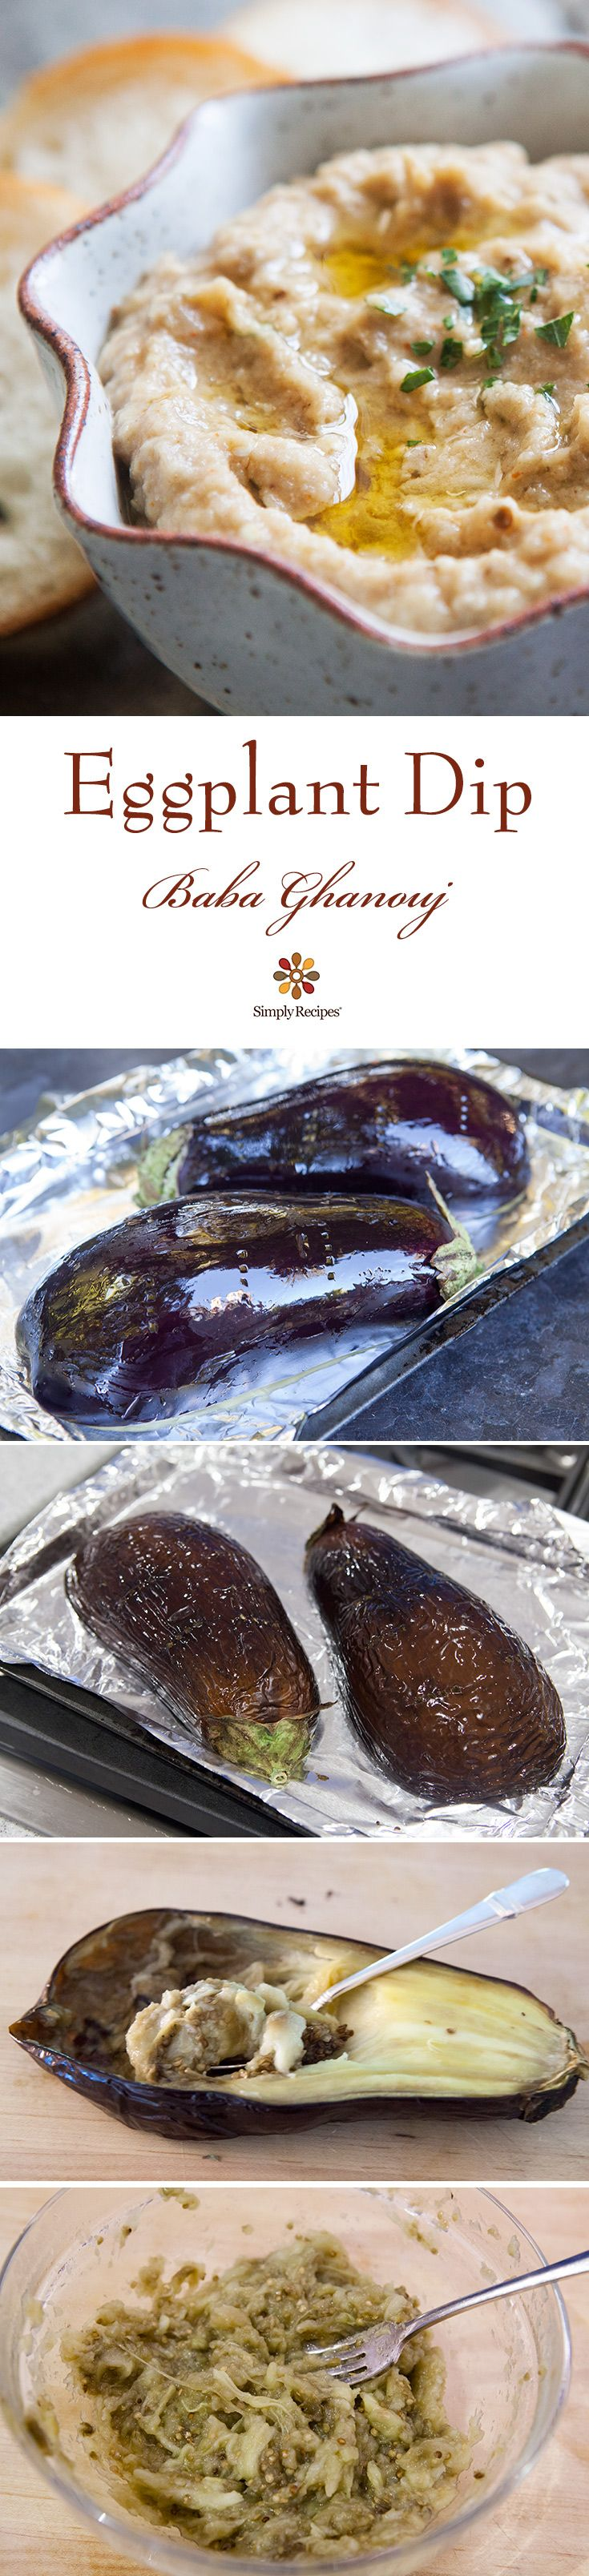 Eggplant Dip (Baba Ghanouj) ~ Classic Mediterranean baba ghanouj eggplant dip, so easy! Baked eggplant pureed with tahini, garlic, and olive oil. Perfect for a #LaborDay gathering ~ SimplyRecipes.com